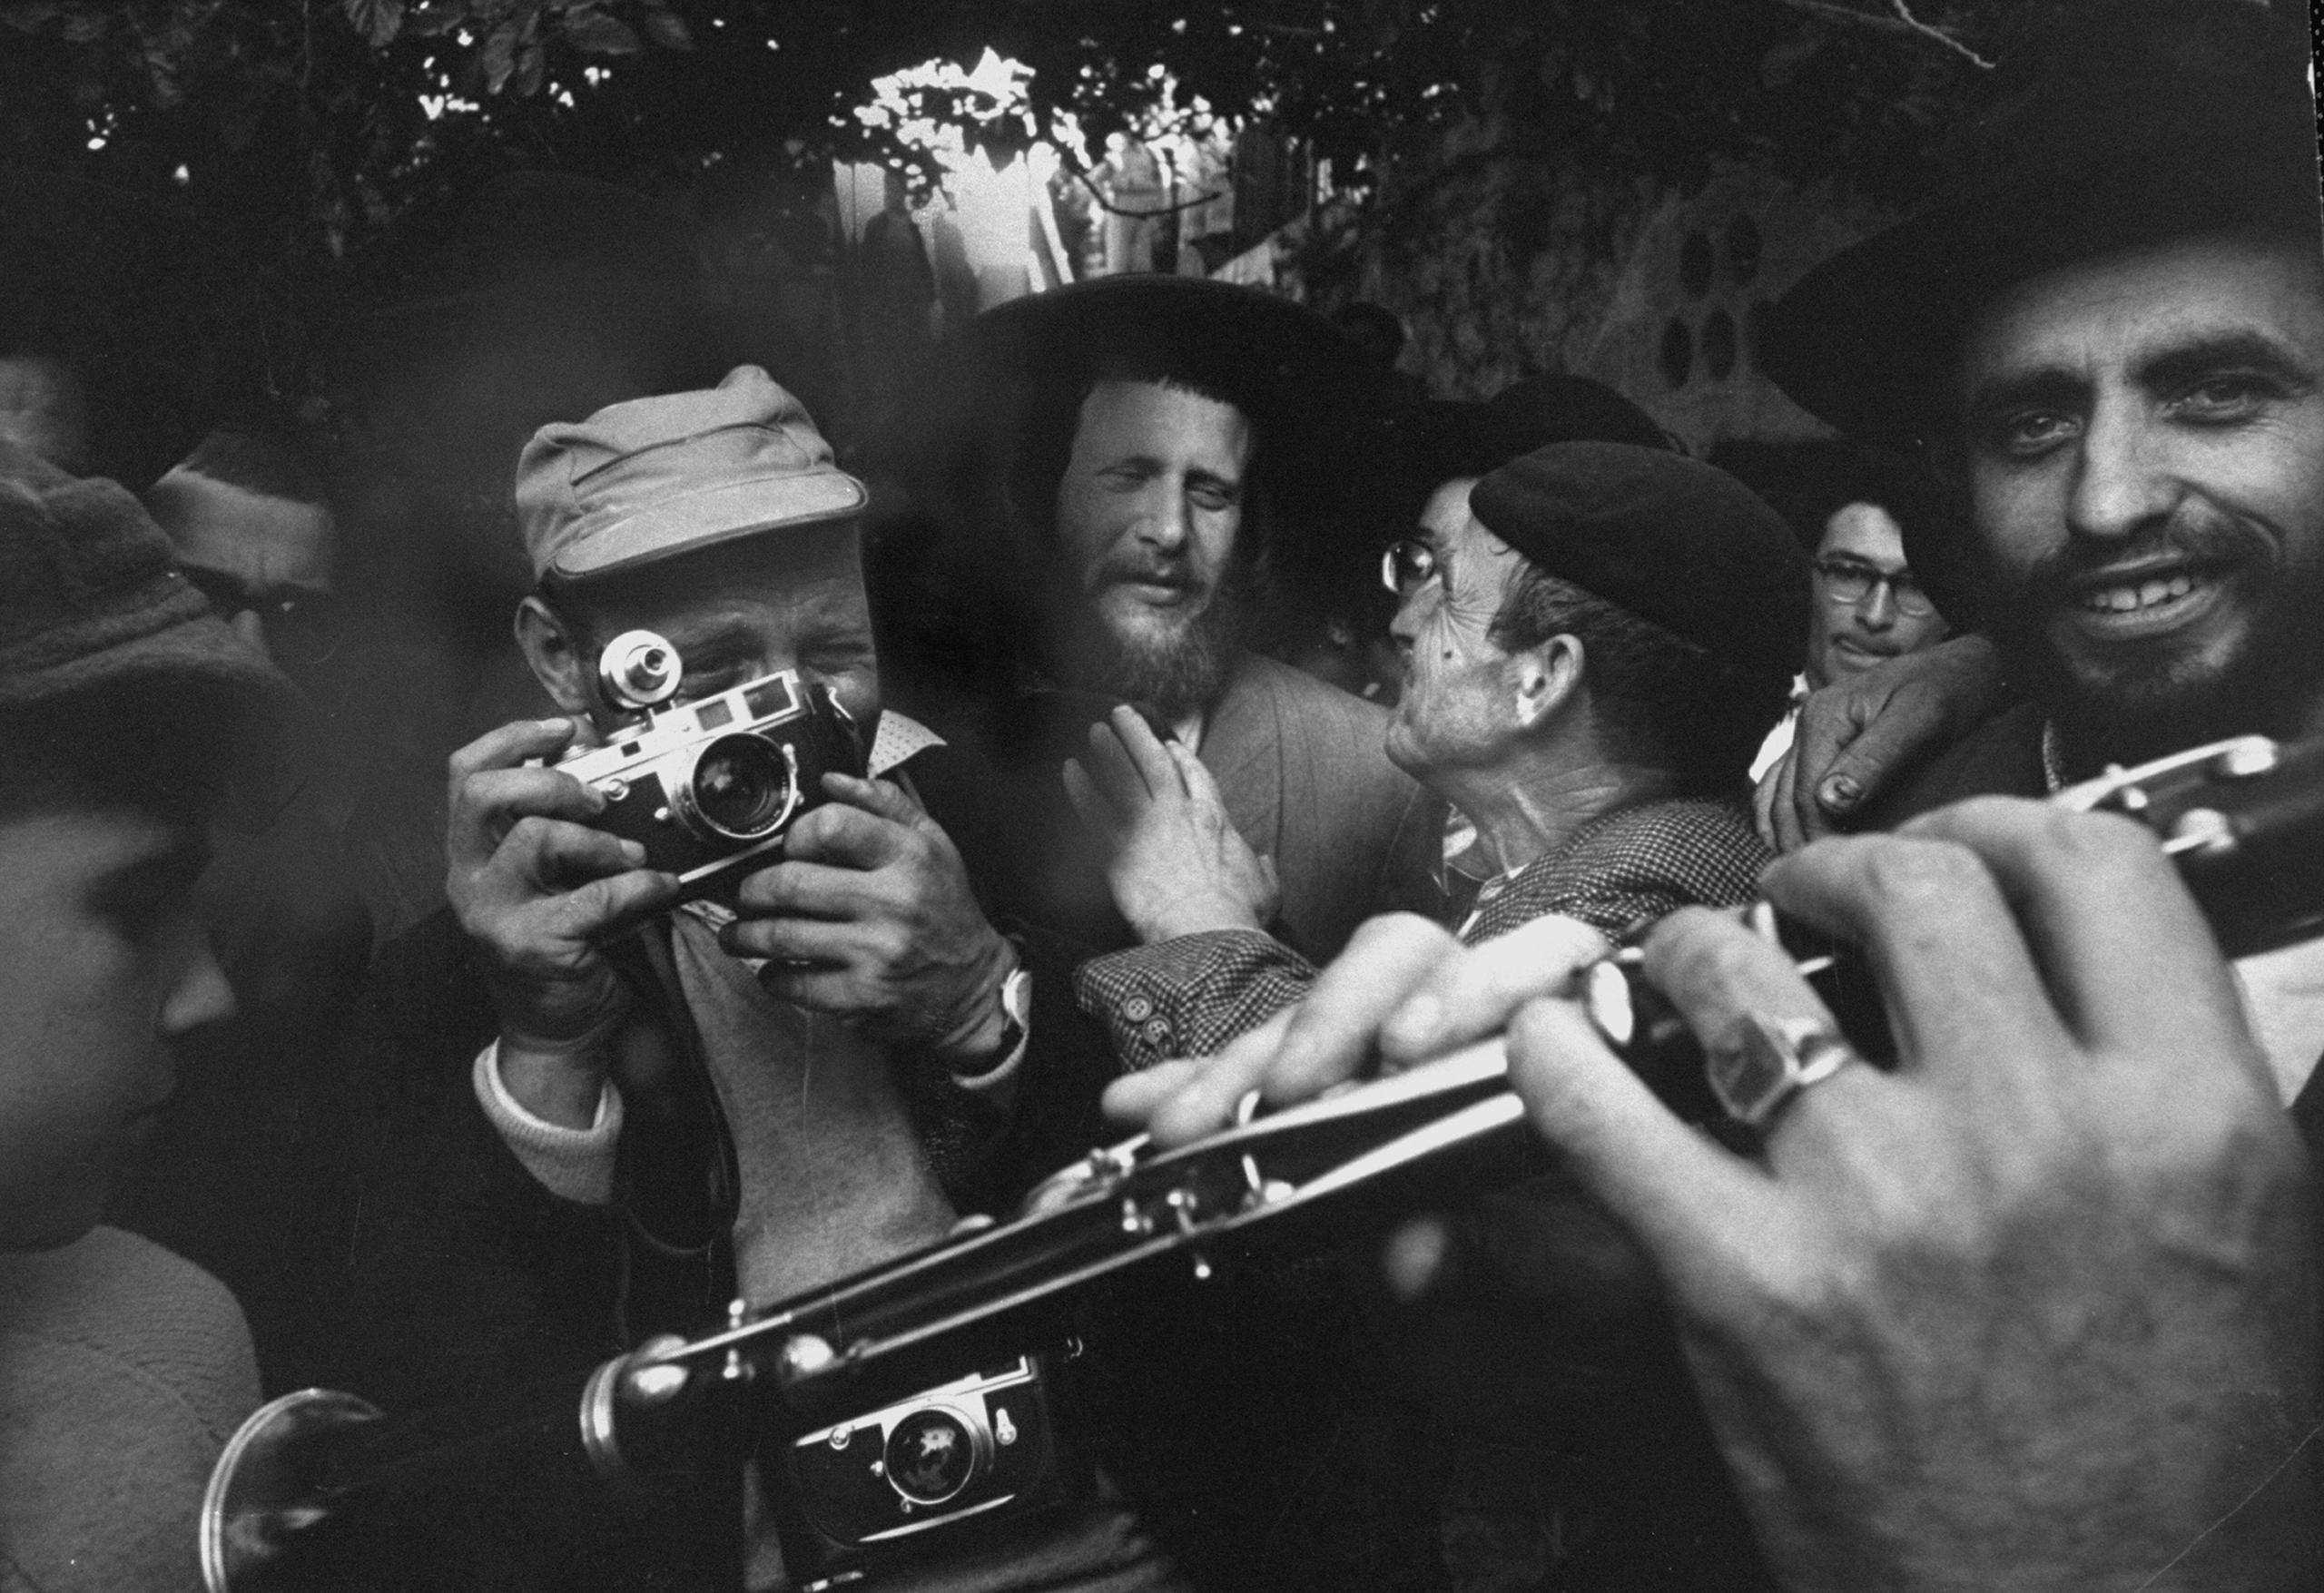 David Rubinger (center L), taking photographs at a religious festival in Israel.